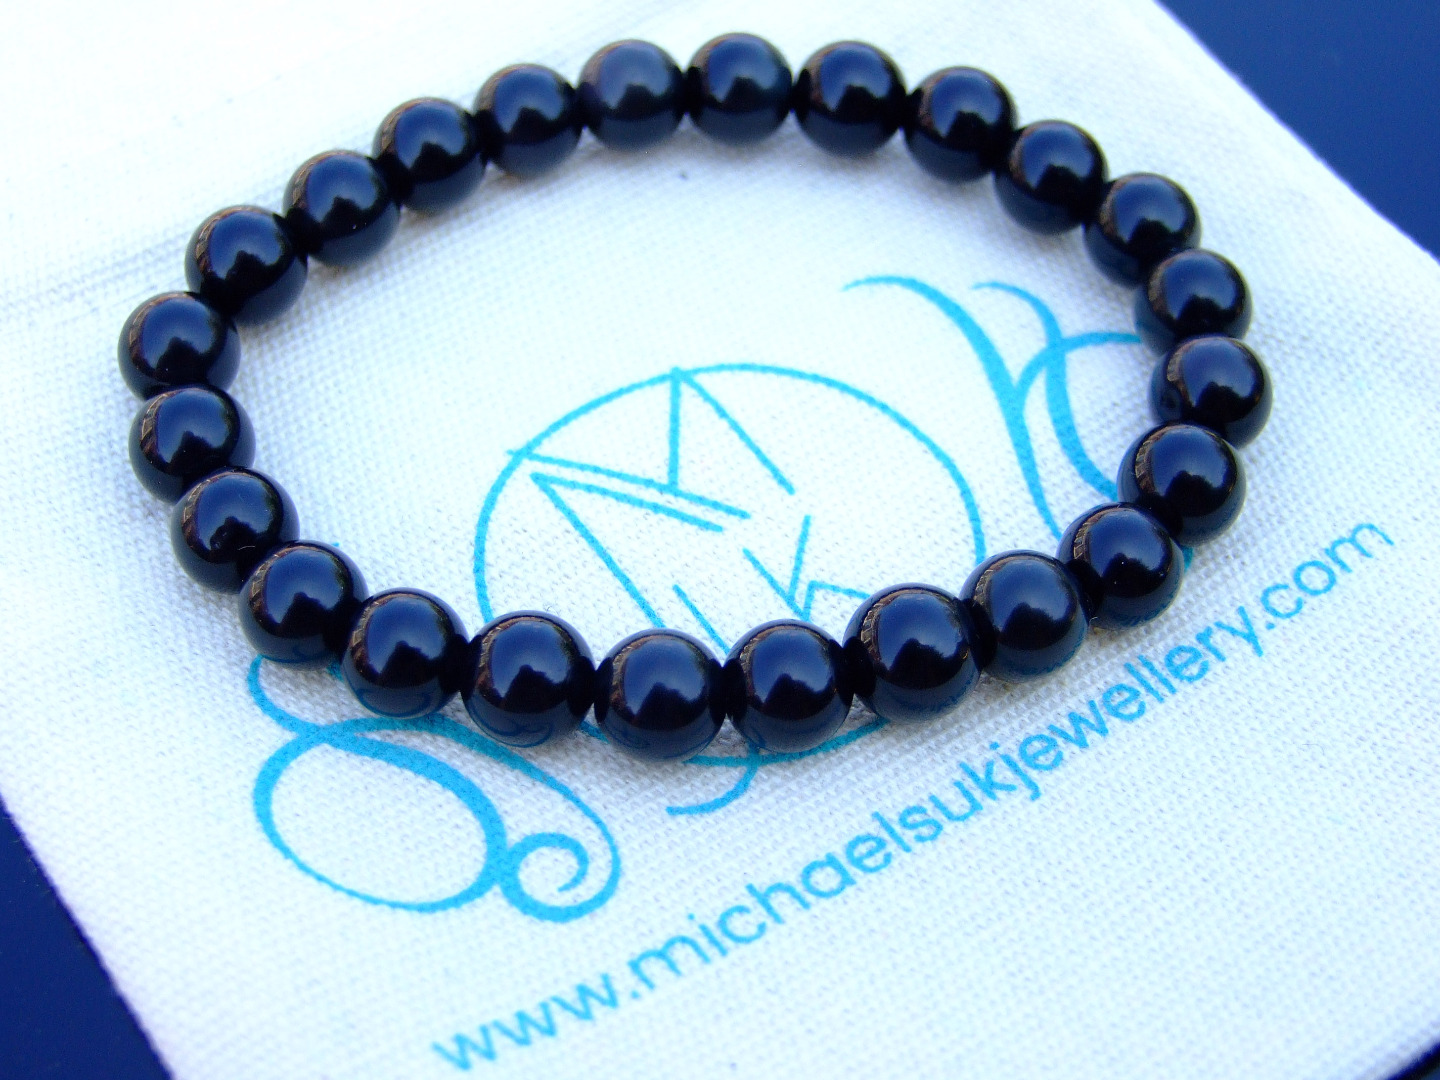 Natural Turquoise Natural 6mm Gemstone Bracelet 6-9 Elasticated Healing Stone Chakra Reiki With Pouch FREE UK SHIPPING